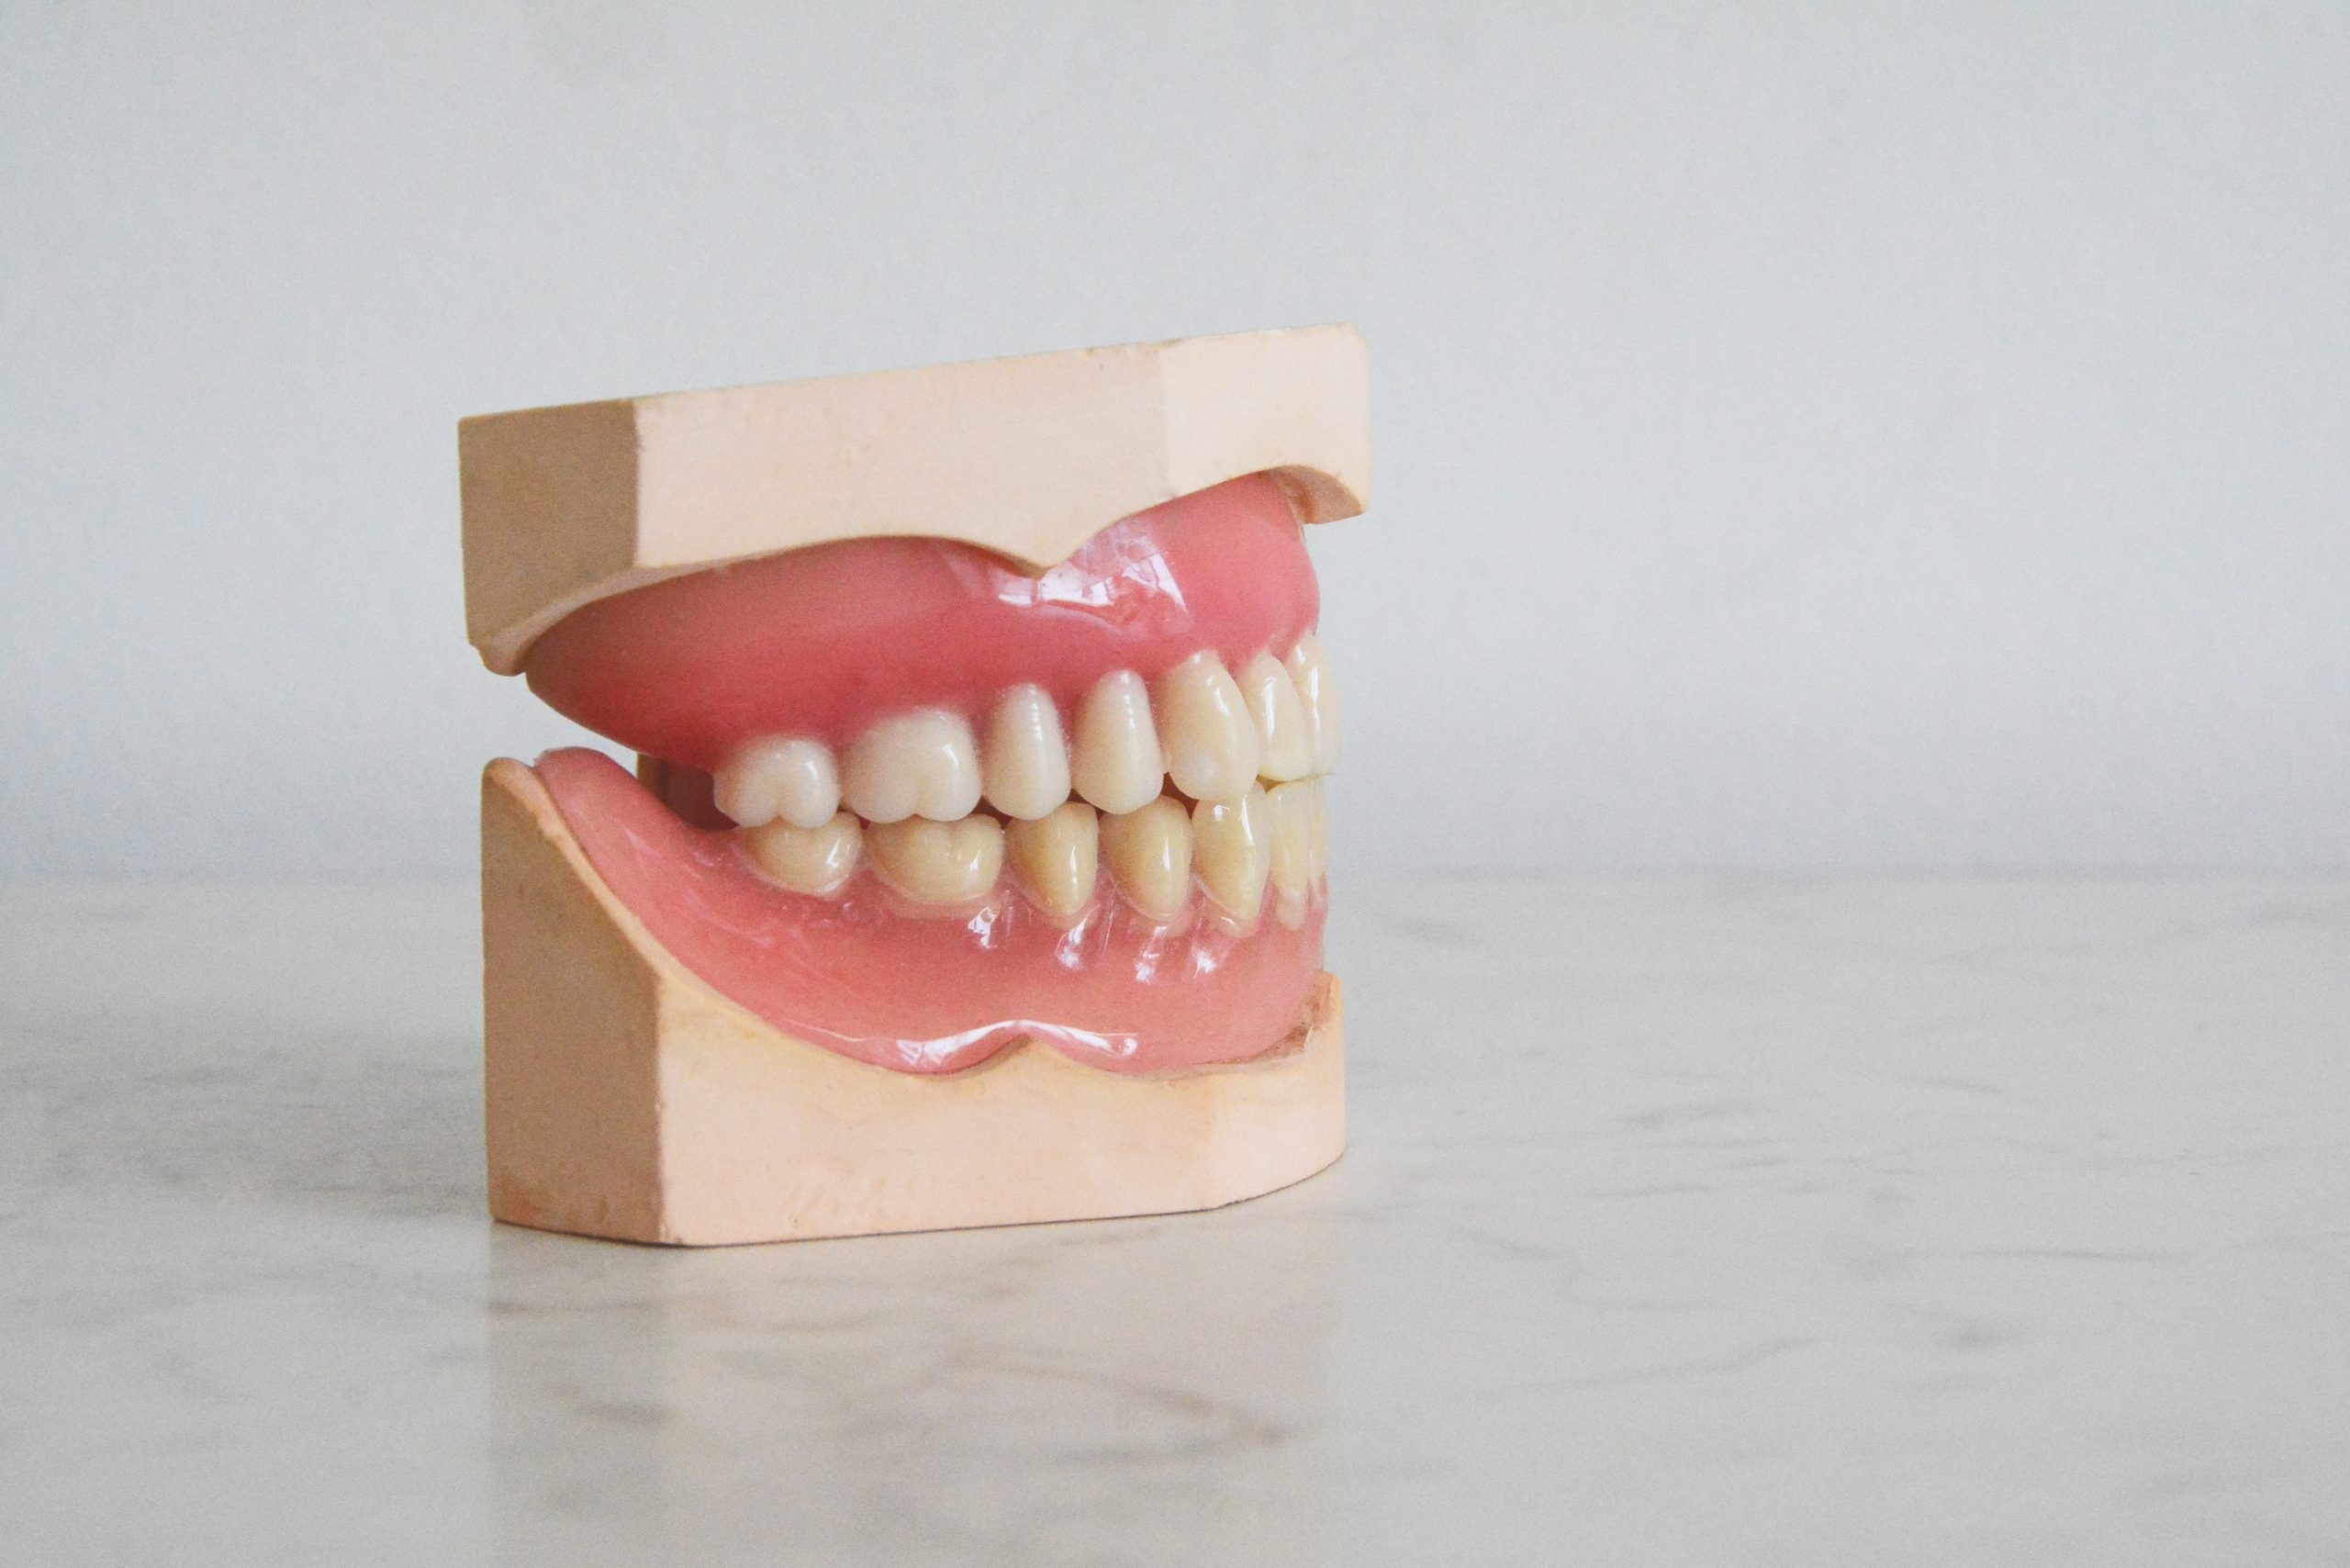 Bridges and Dentures: Cost, Differences, and Recommendations